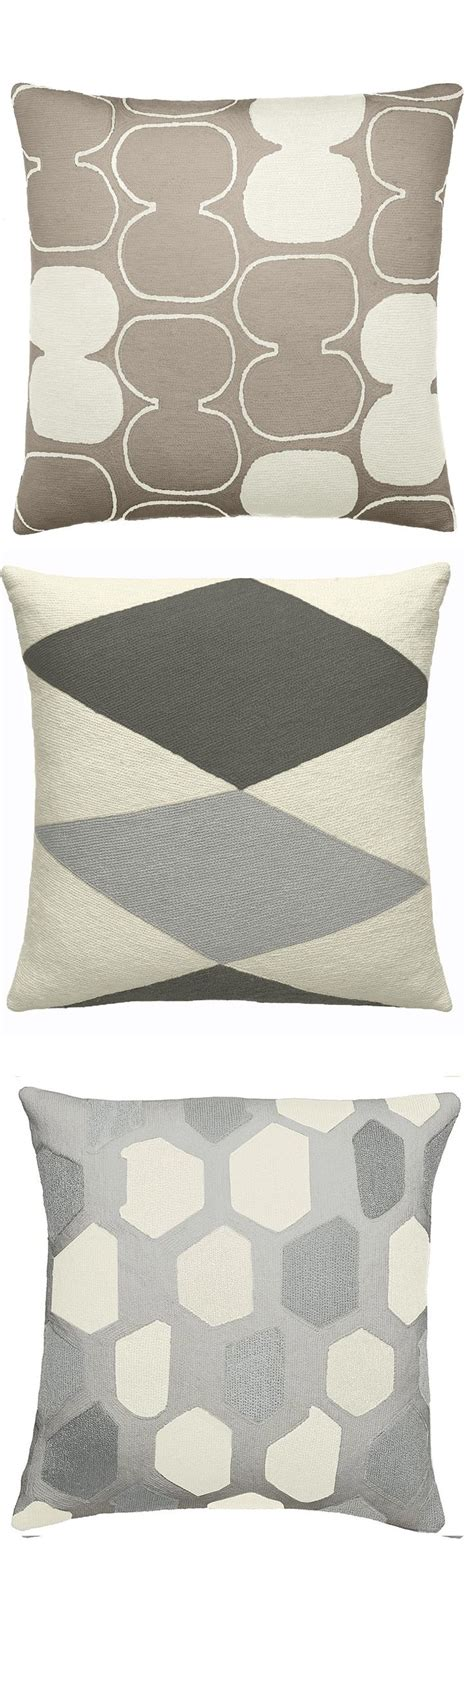 accent pillows for grey sofa 17 best images about gray pillows on pinterest sofa